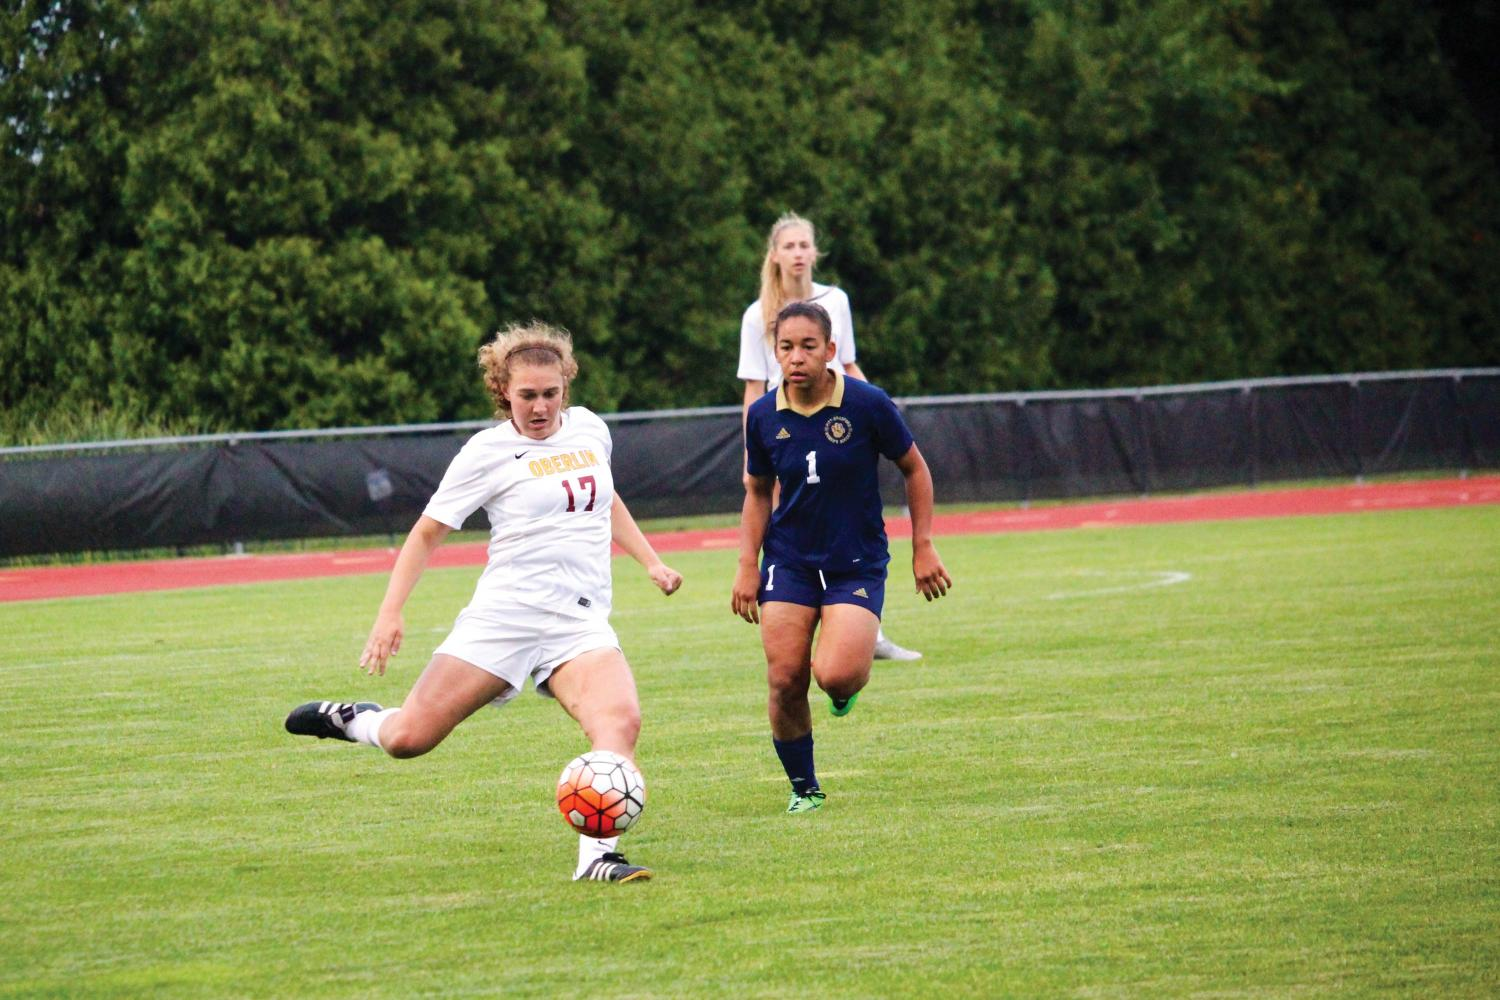 Senior defender Lauren Koval rifles the ball past the University of Pittsburgh at Bradford Panthers' defense in their 4–0 win Sept. 1. The Yeowomen, who are 6–0–1, start conference play against Ohio Wesleyan University tomorrow at 3 p.m. at Fred Shults Field.